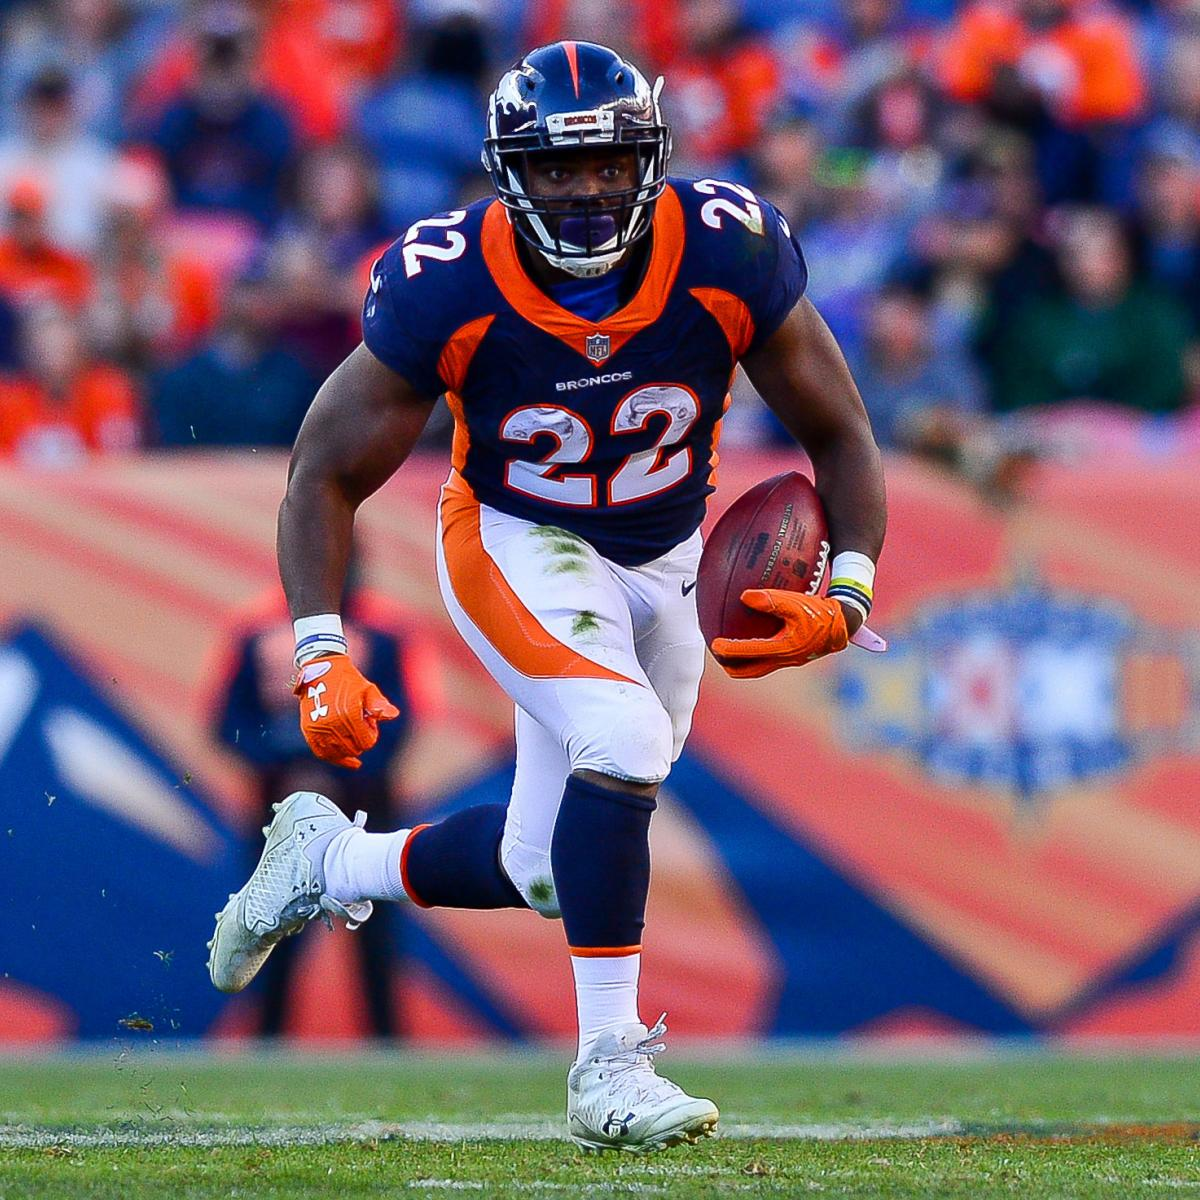 C.J. Anderson Reportedly Cut by Broncos After 5 Seasons with Team